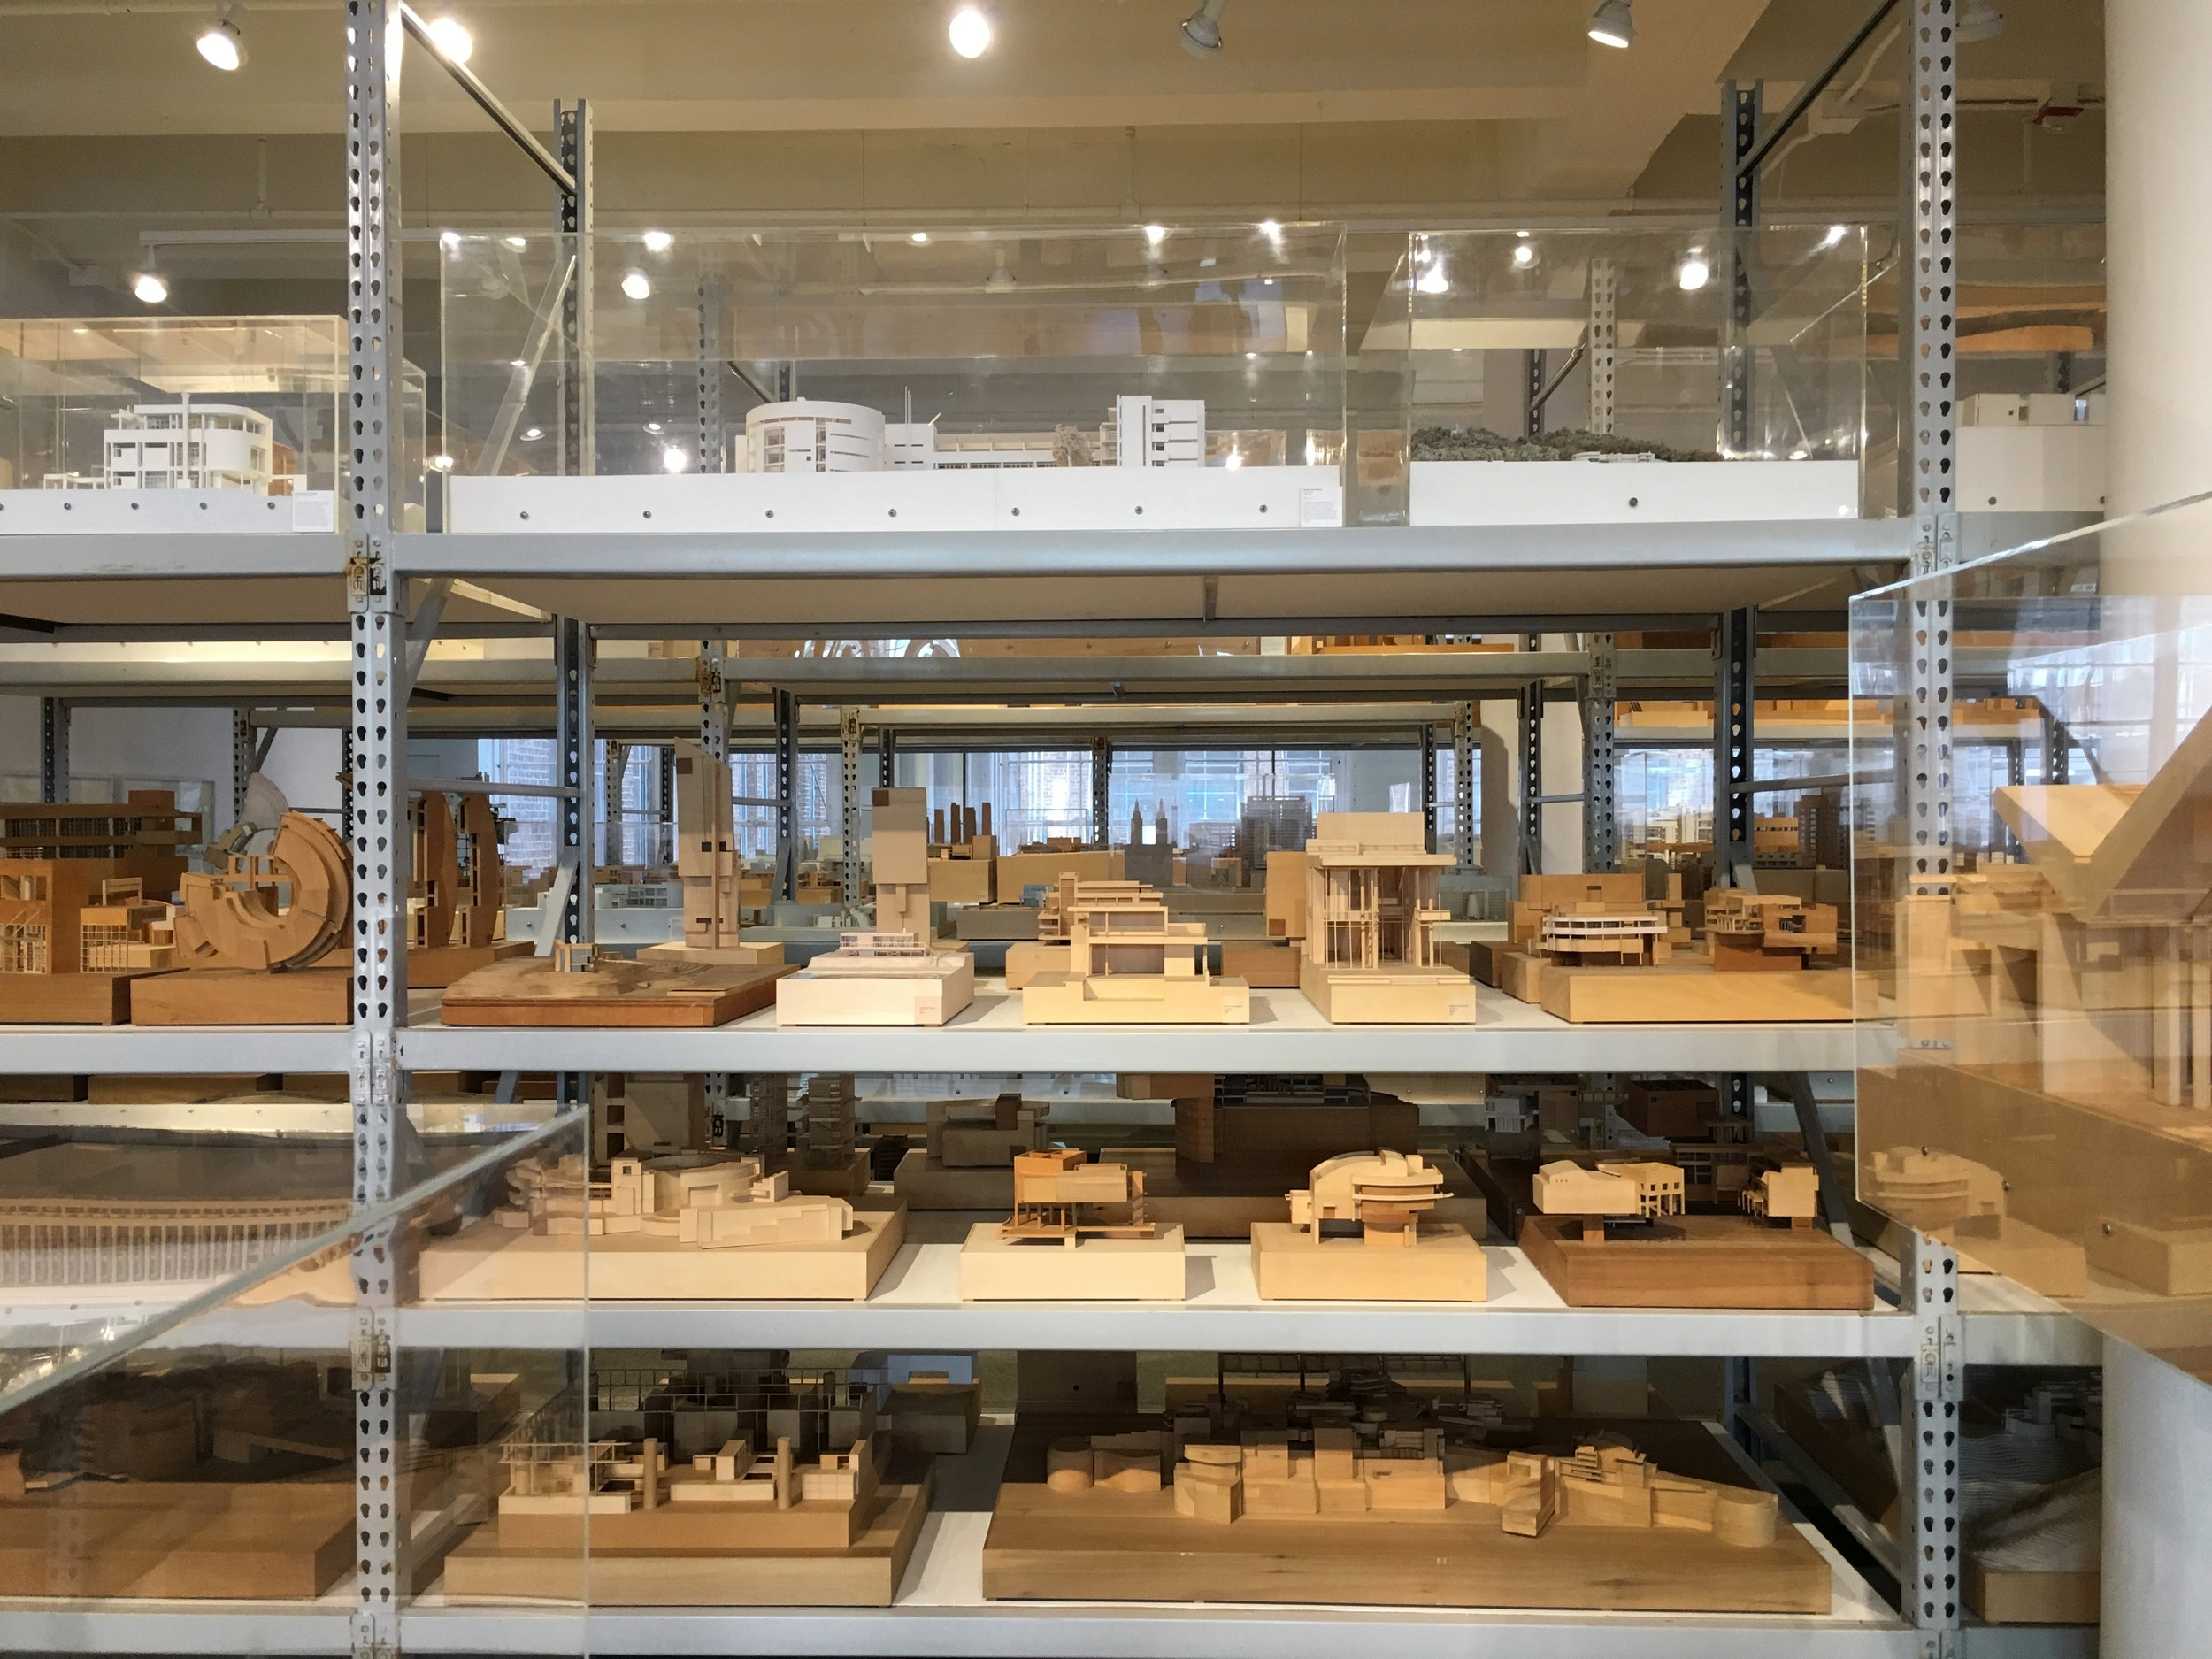 Various project models at the Richard Meier Archive, Mana Contemporary